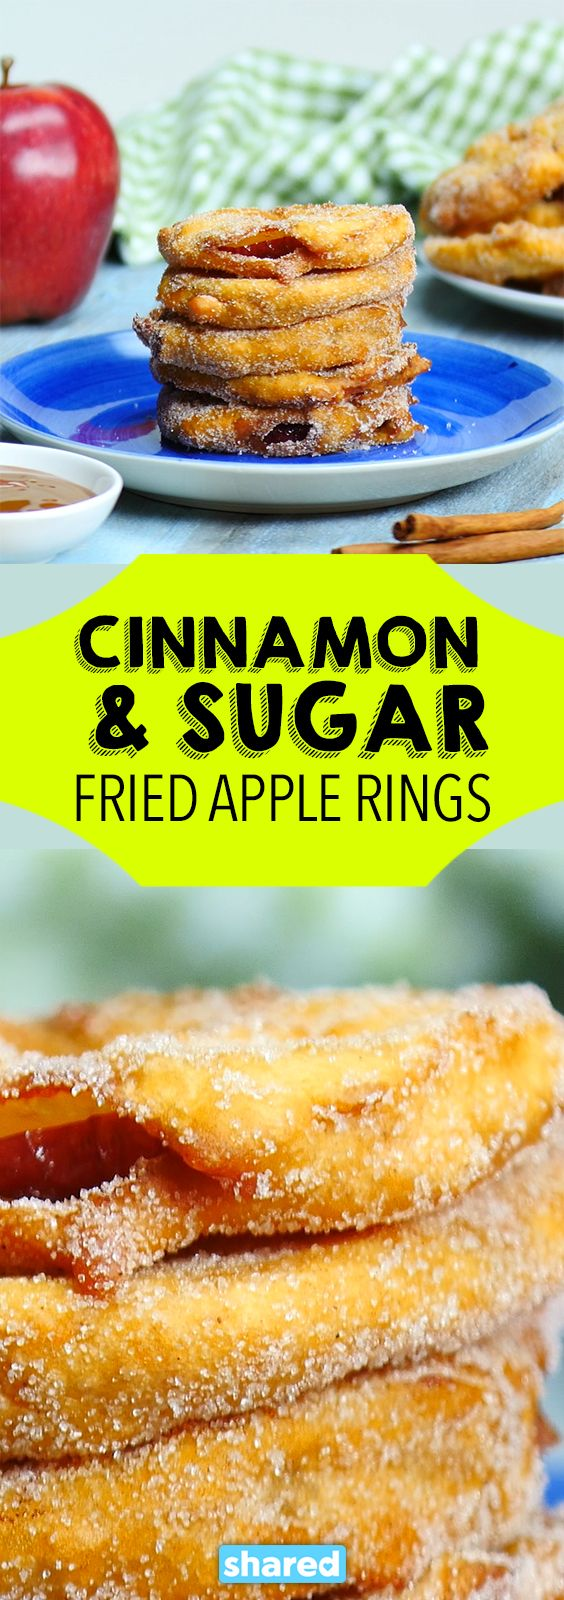 Cinnamon & Sugar Fried Apple Rings - These Cinnamon & Sugar Fried Apple Rings are better than any dessert you've tried in the last little while - guaranteed! Seriously, when you batter up some slices of fresh apple, you might not expect much, but the second these delicious fried apple rings hit your taste buds, you'll be in heaven! You might want to double up on this scrumptious recipe - these will go fast!